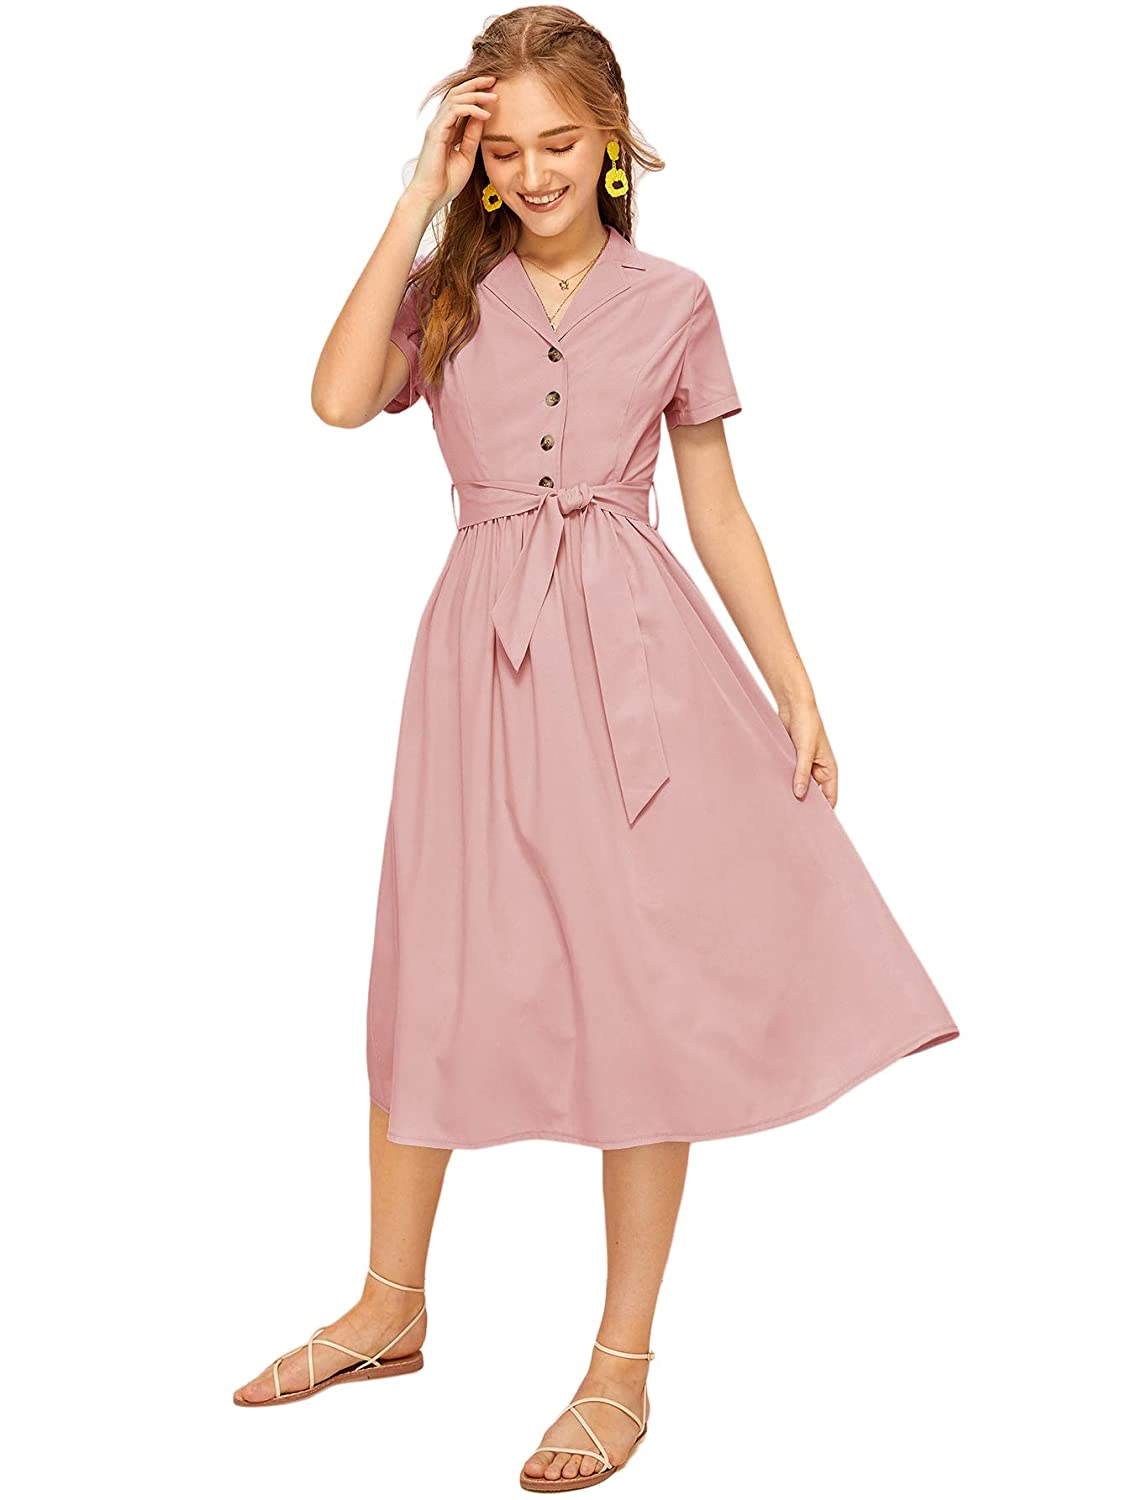 1940s Dresses | 40s Dress, Swing Dress Verdusa Womens Short Sleeve Button Front Belted Solid Midi Dress $26.99 AT vintagedancer.com